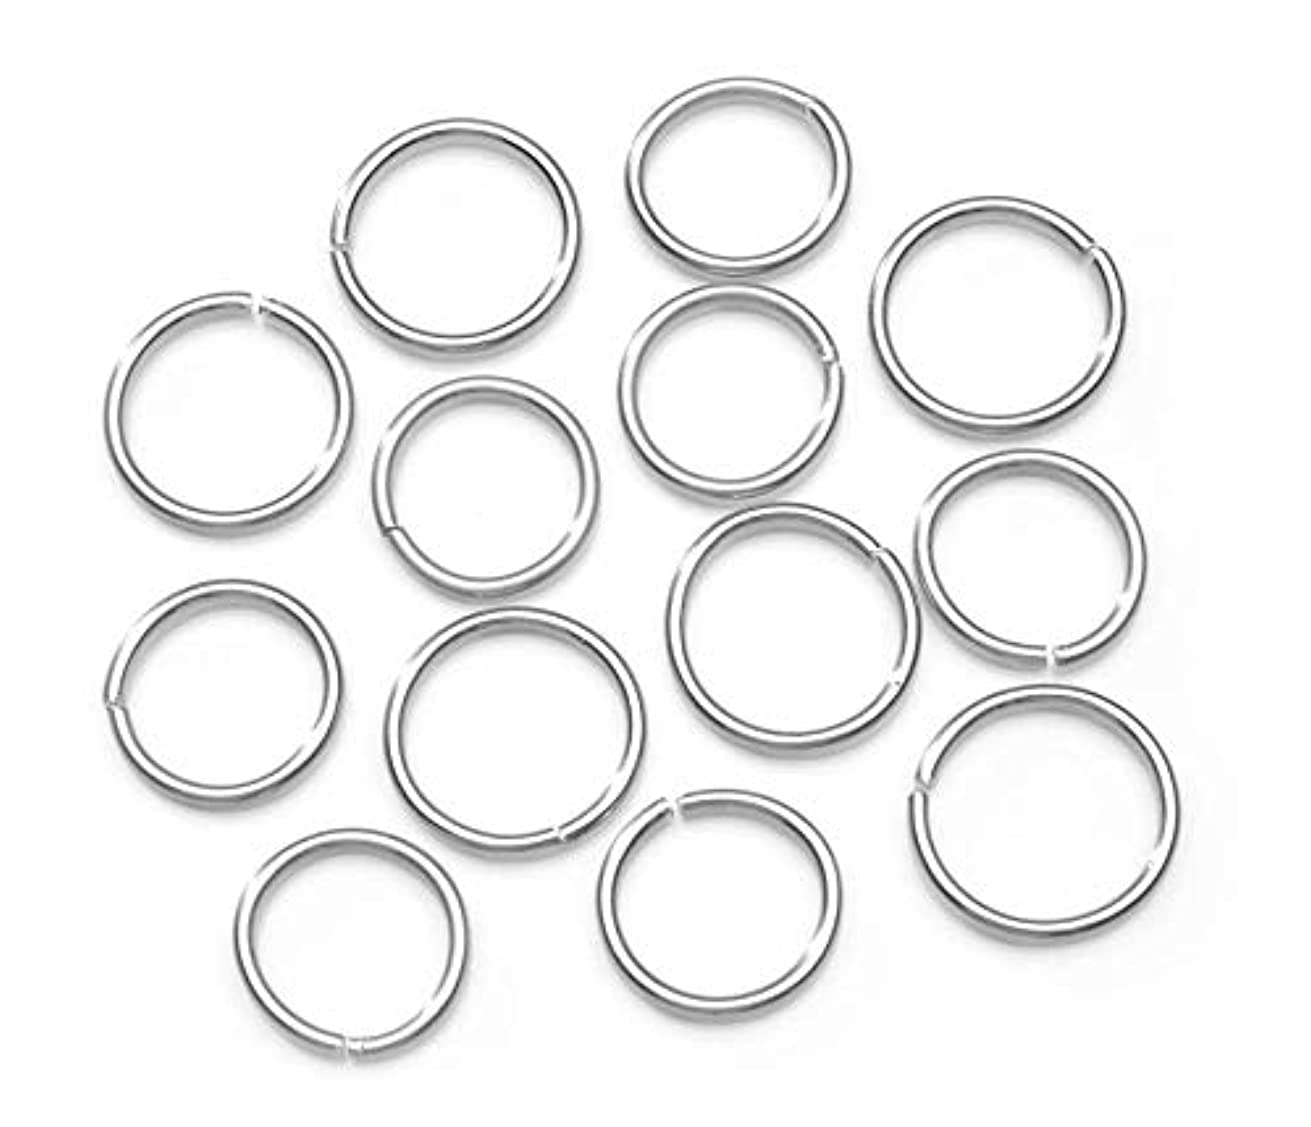 Jewelry Designer 1999-1754 Round AST 44PC Jump Rings Silver Alum, 44 Pieces,